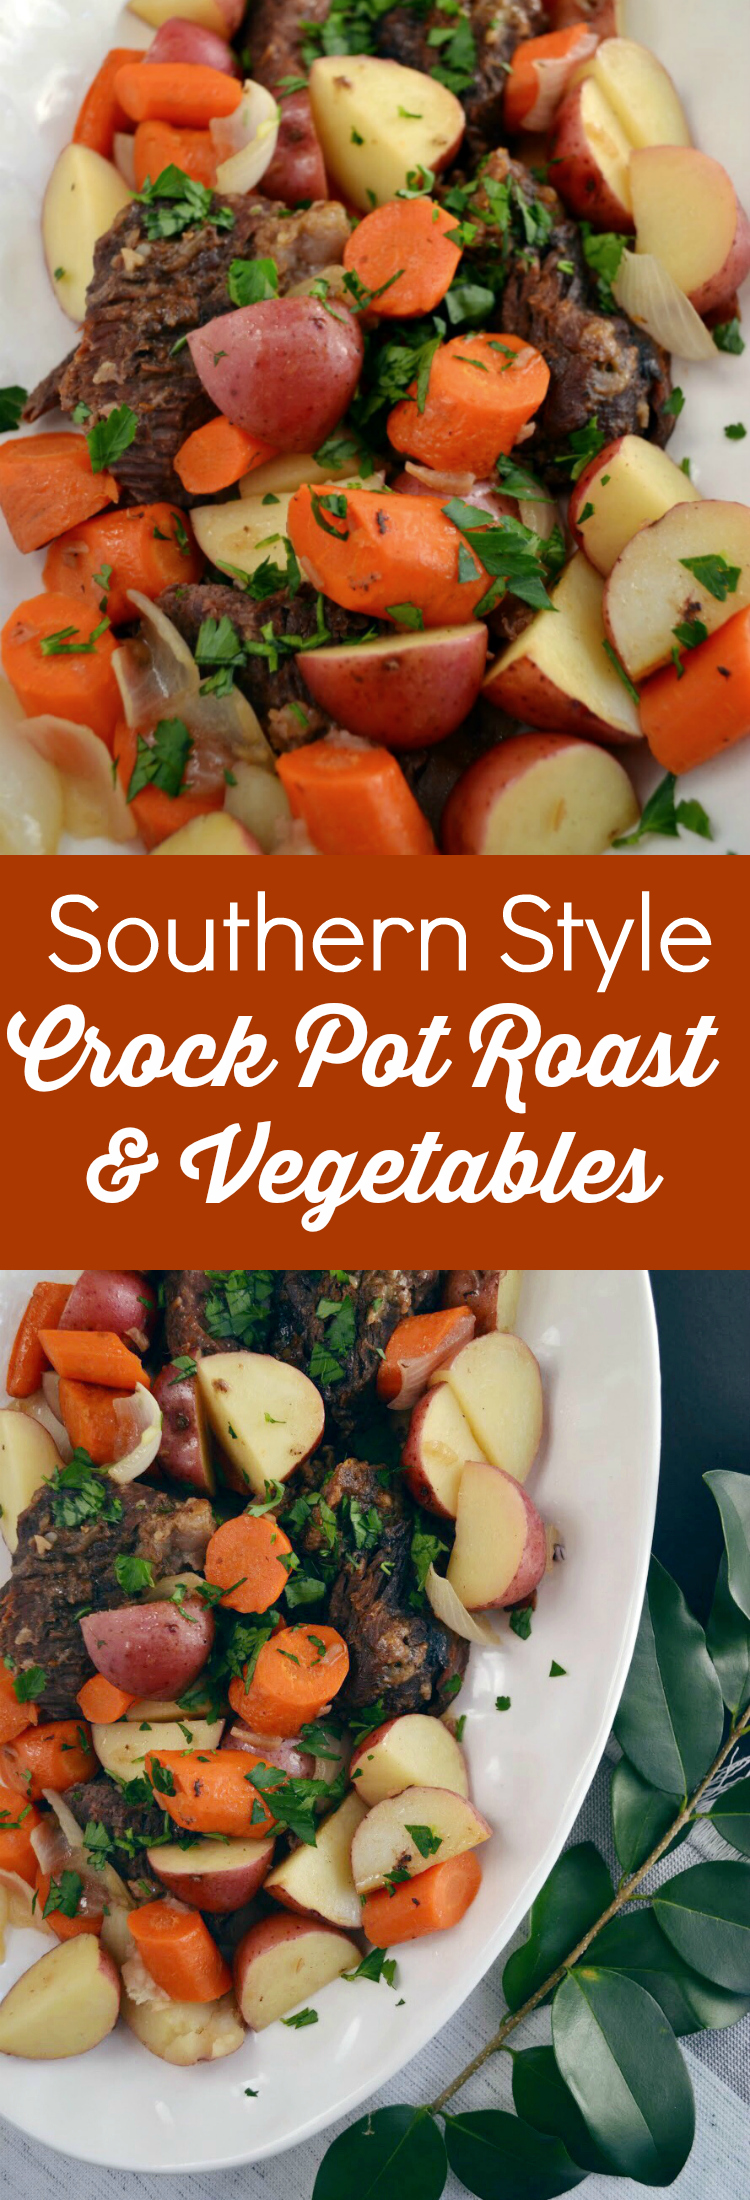 Crock Pot Roast and Vegetables – over 5 hours in the slow cooker makes this pot roast tender and super flavorful. Serve over rice for a classic Southern supper!